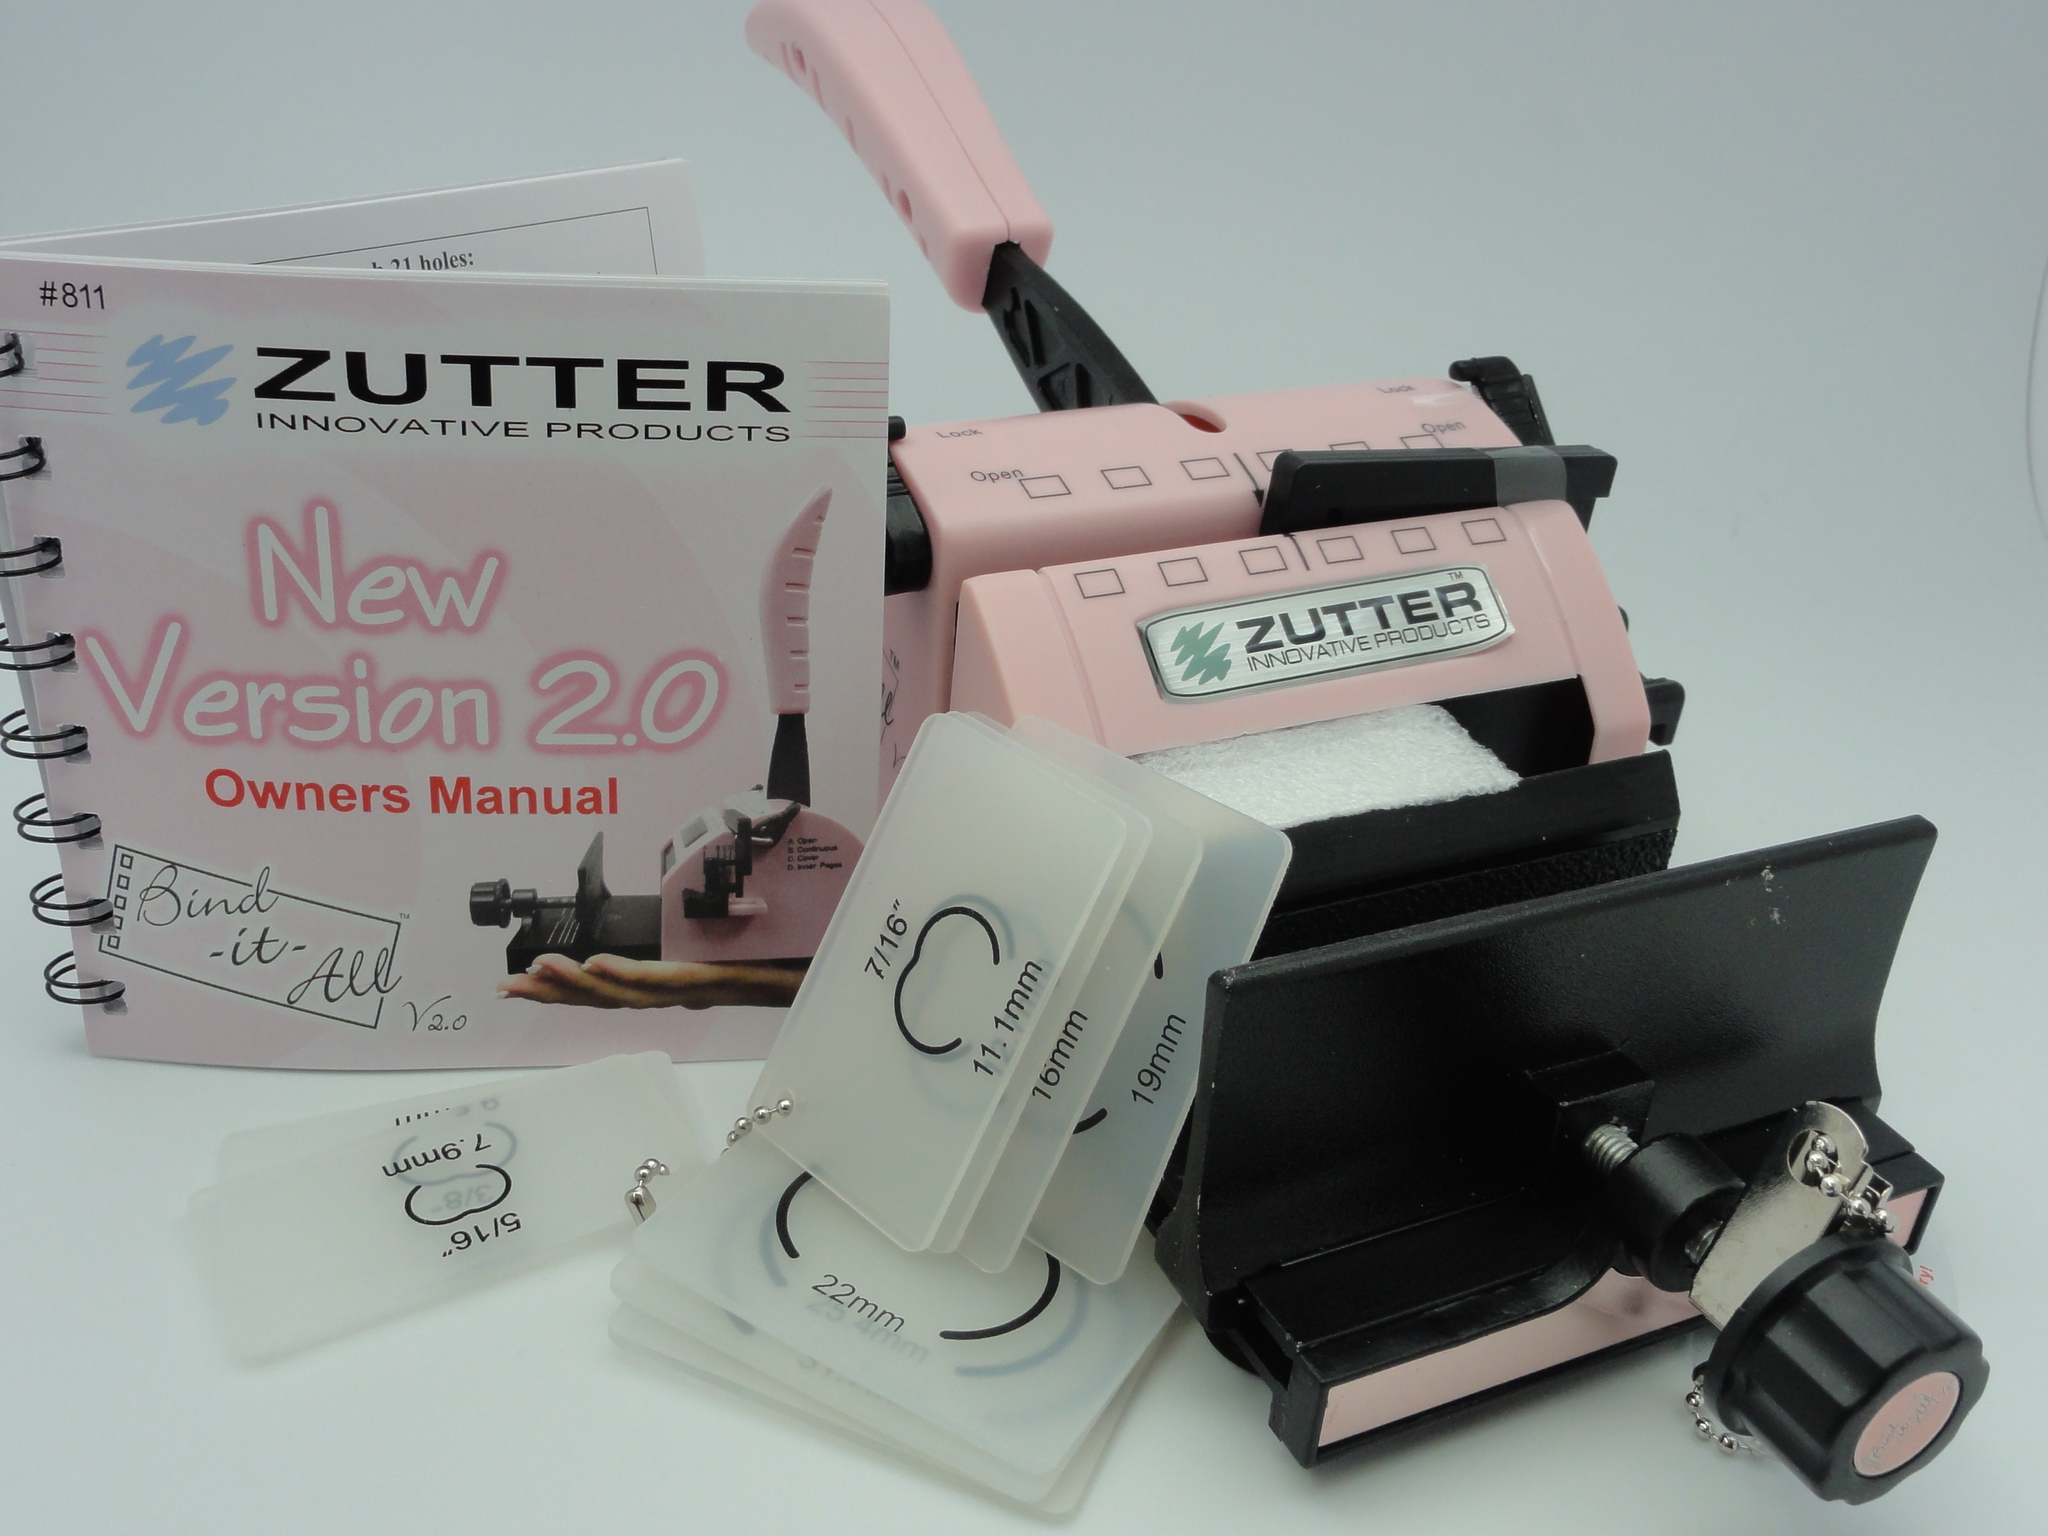 zutter binder machine